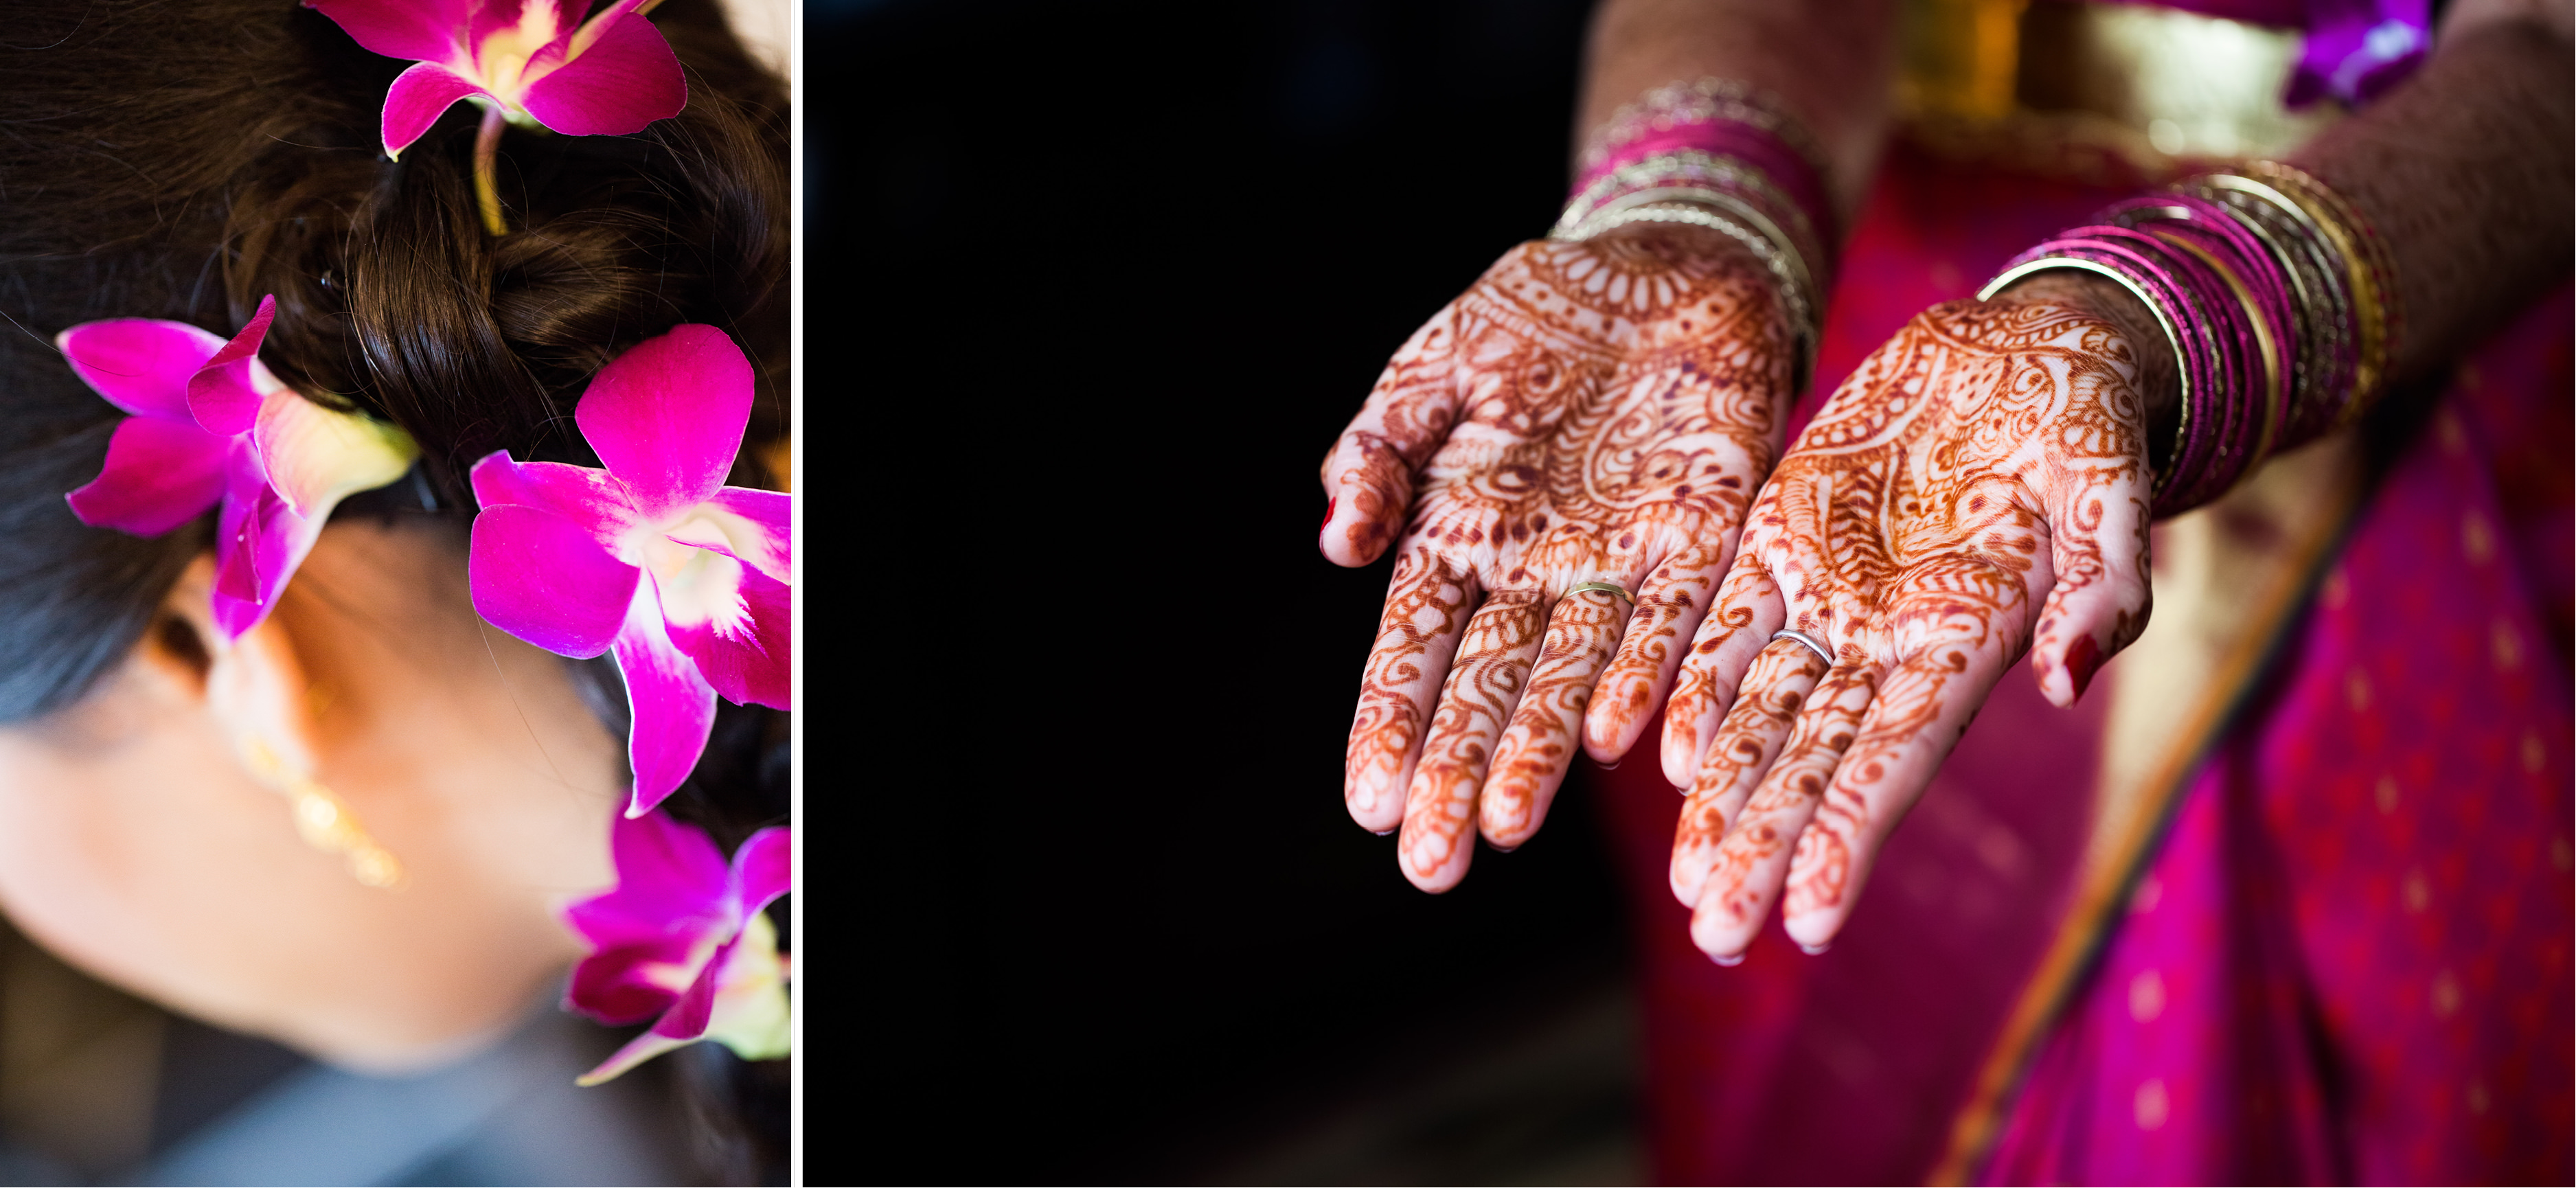 Emma_cleary_photography Indian Wedding2